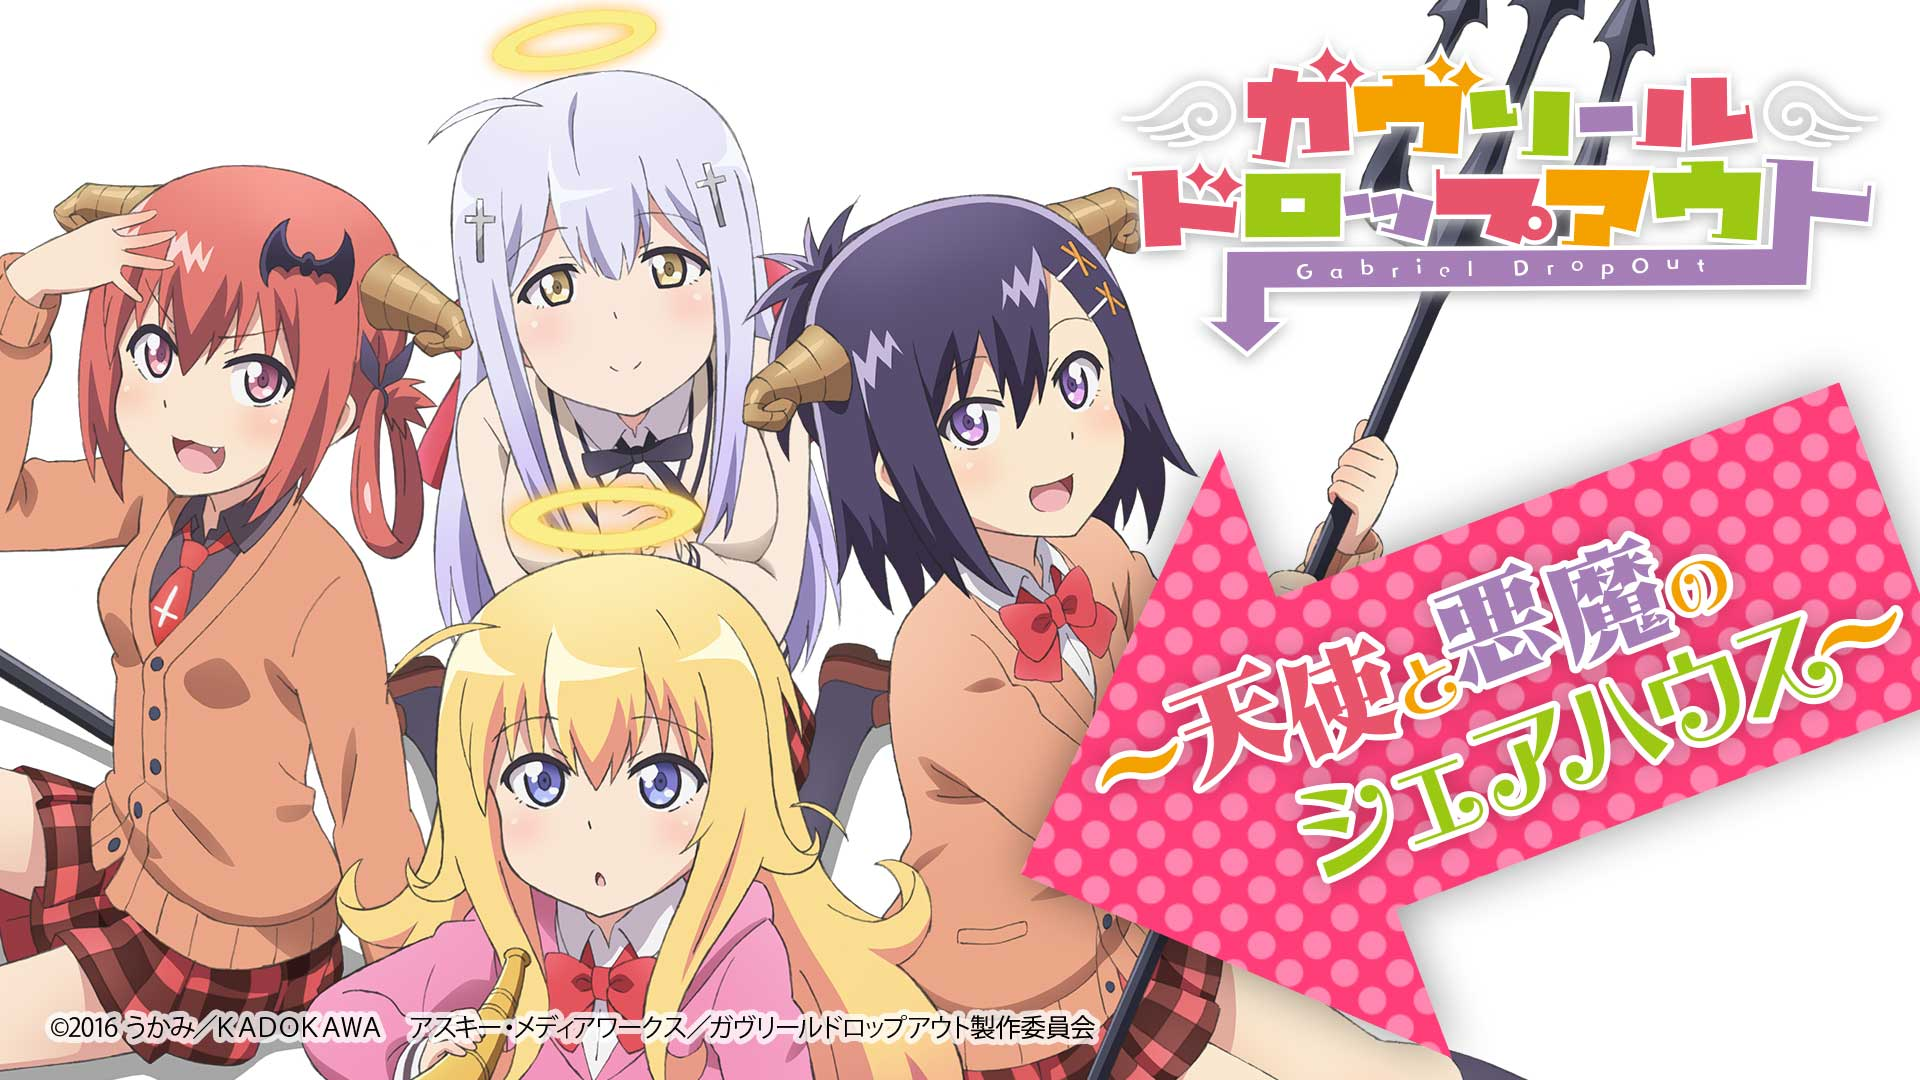 anime review: gabriel Dropout